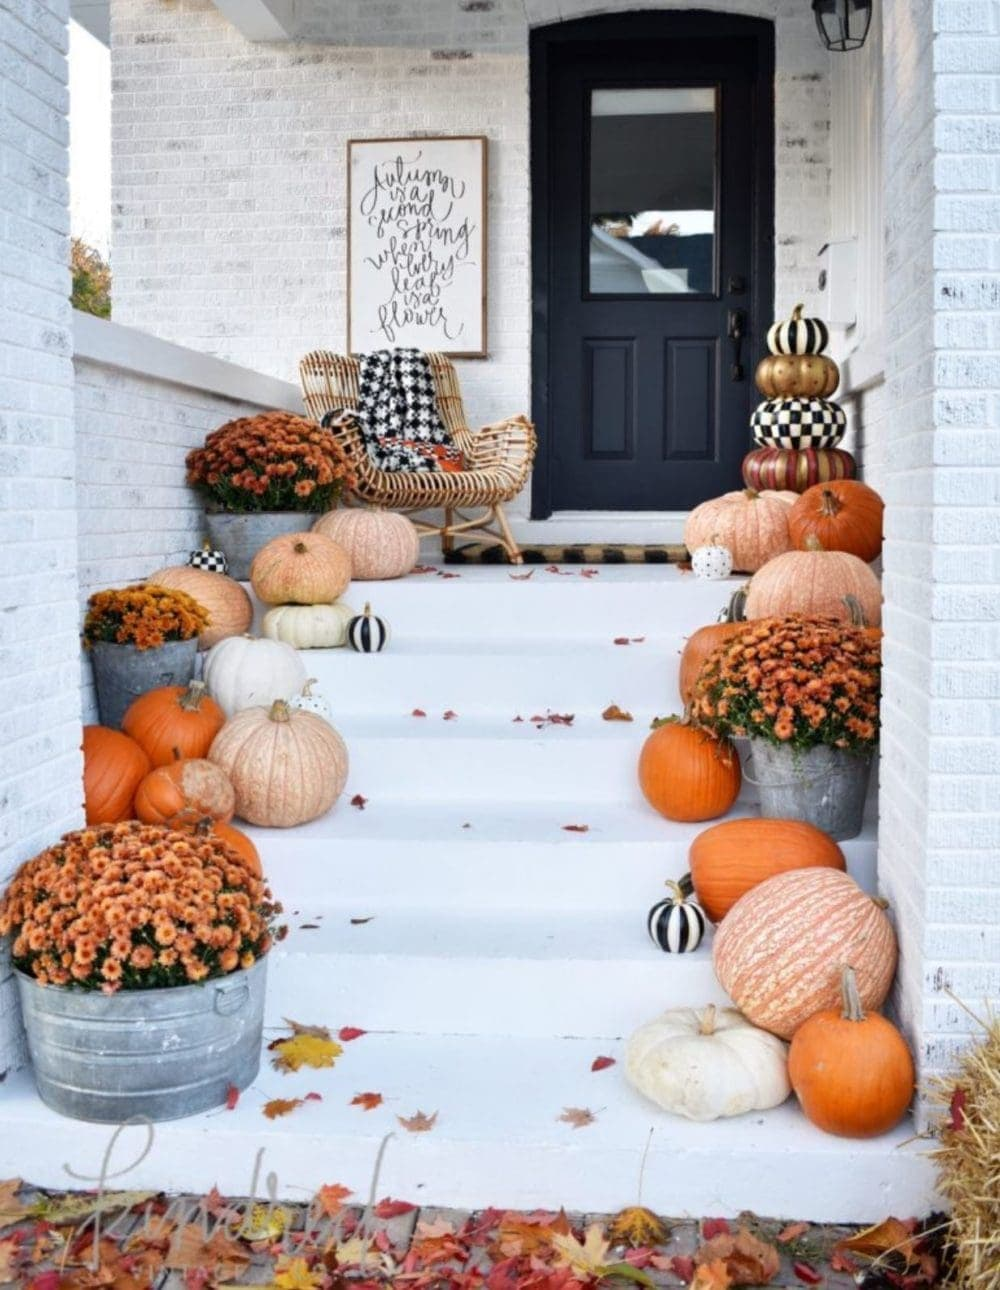 Fall front porch ideas using tons of pumpkins on each step leading to the front door